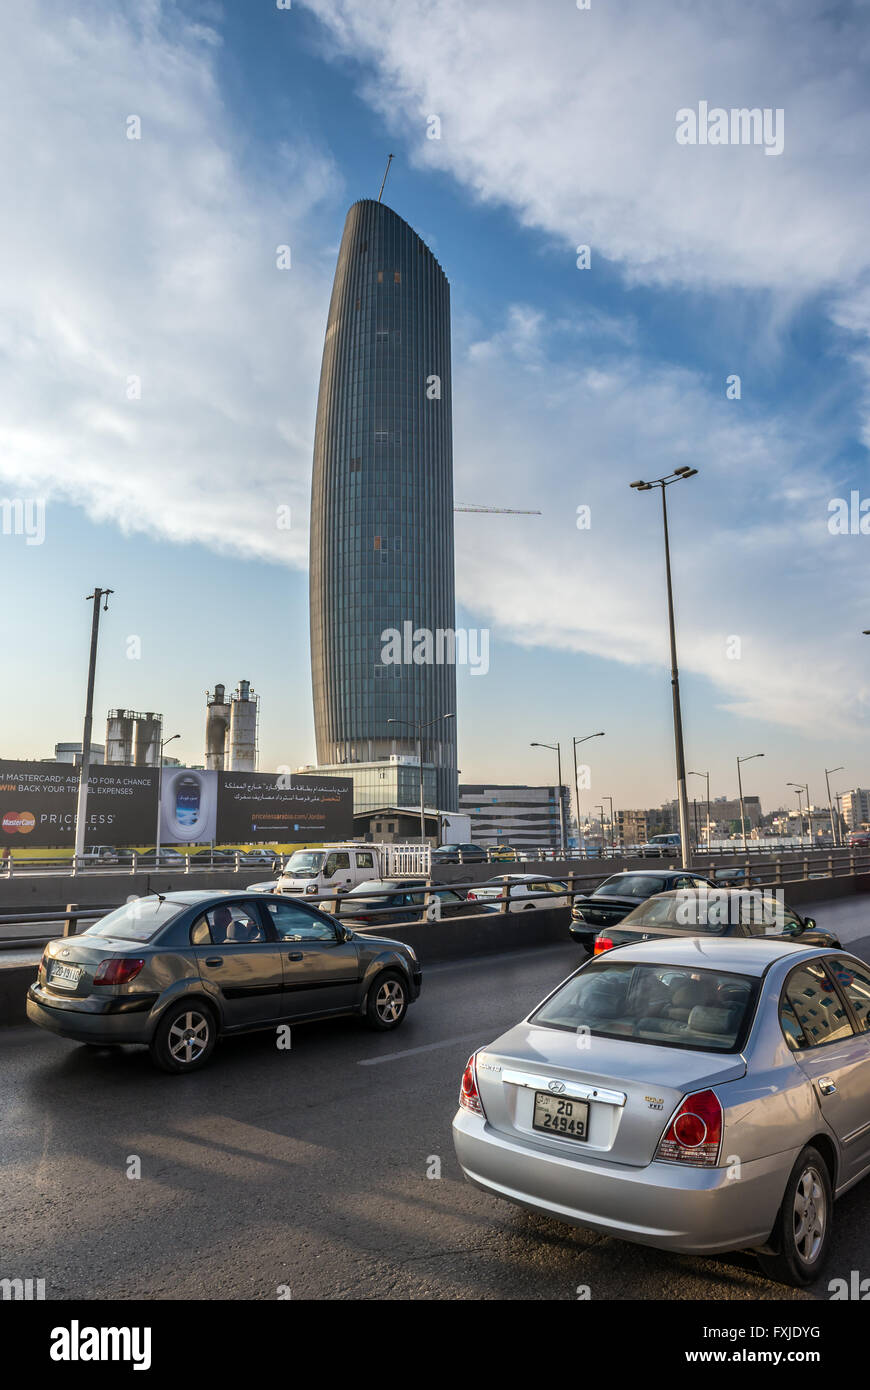 Amman Rotana Hotel Tower Part Of Abdali Project In City Capital Jordan View From Queen Noor Street